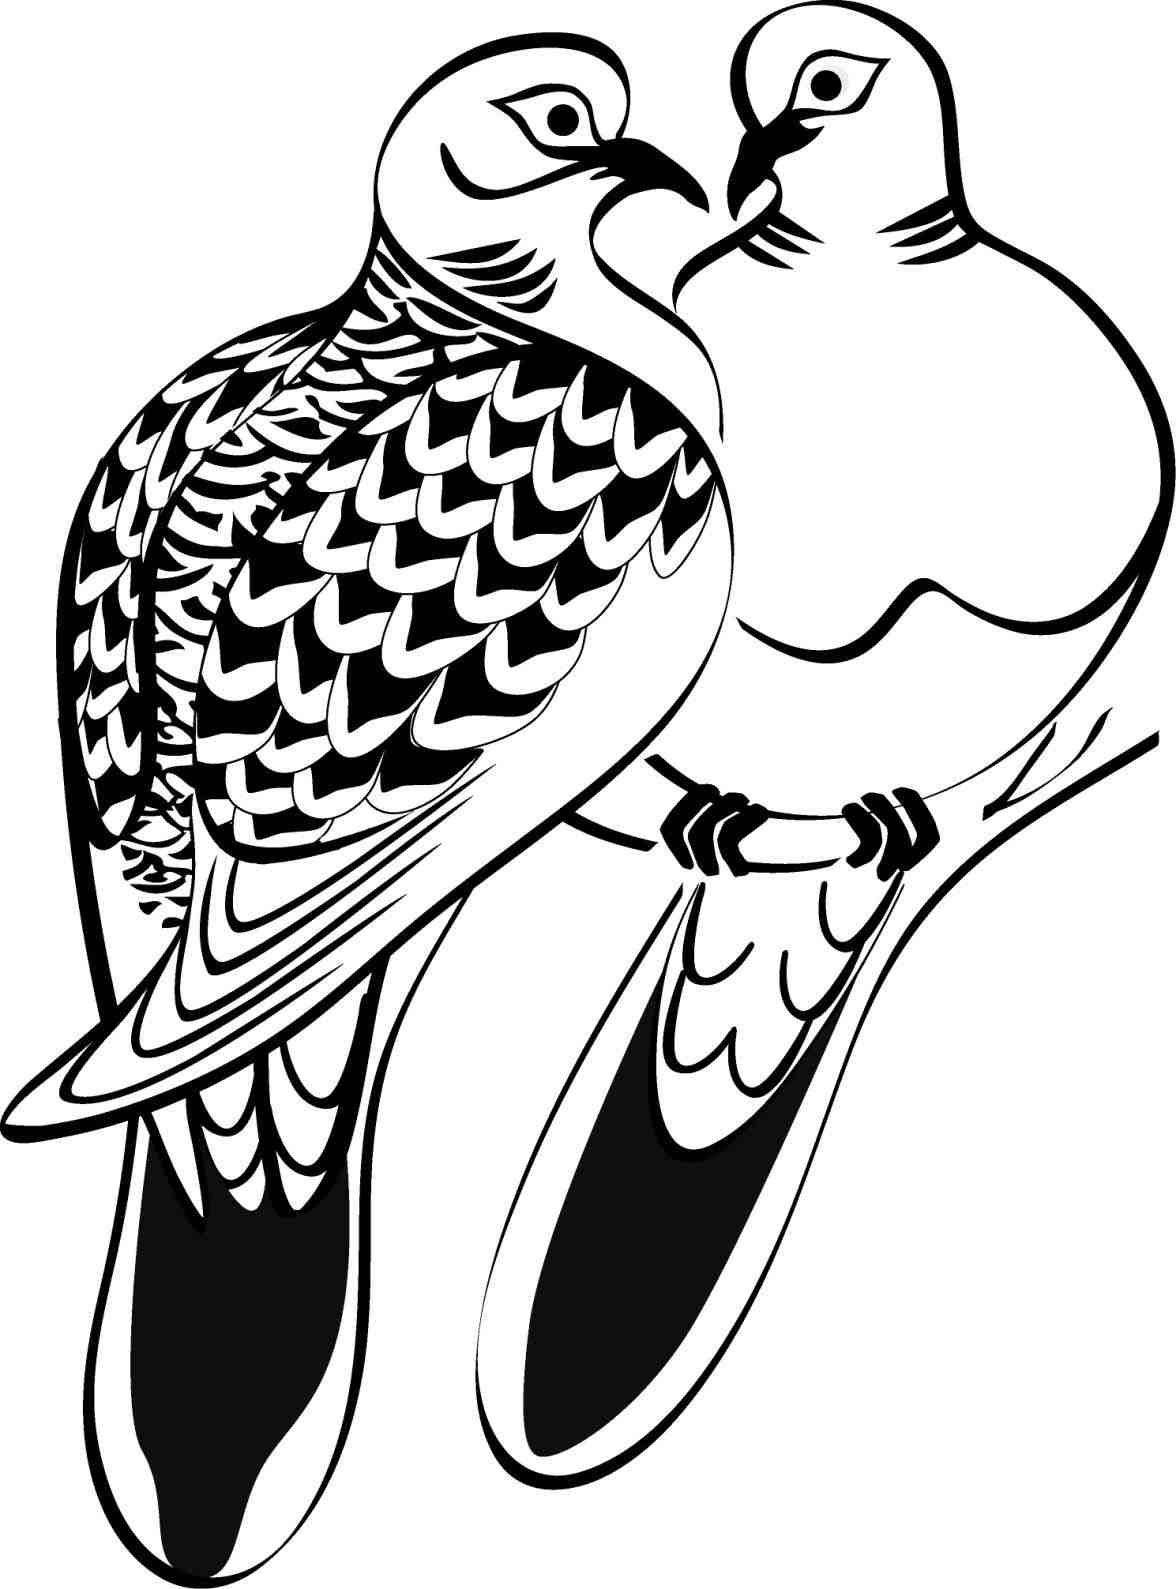 White doves drawing at free for personal for Turtle dove template